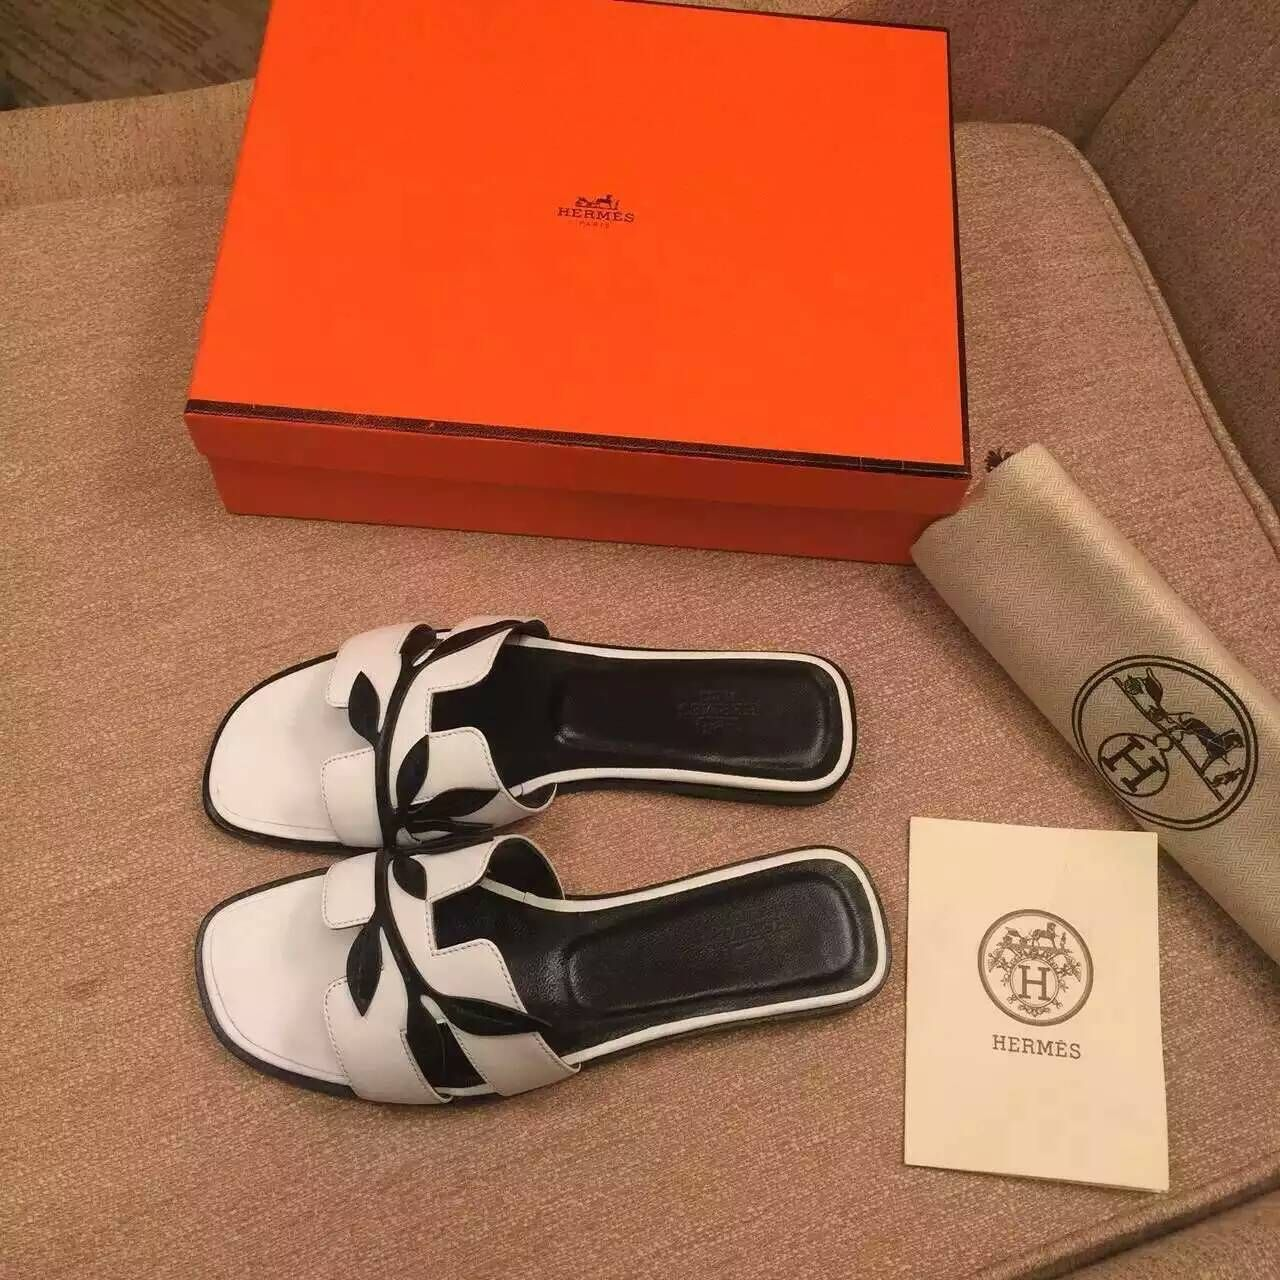 Free Shipping!2016 Hermes Outlet With Free Shipping-Hermes Oasis in white  and black Leather H161019Z-WBL 1ebabce5a0866